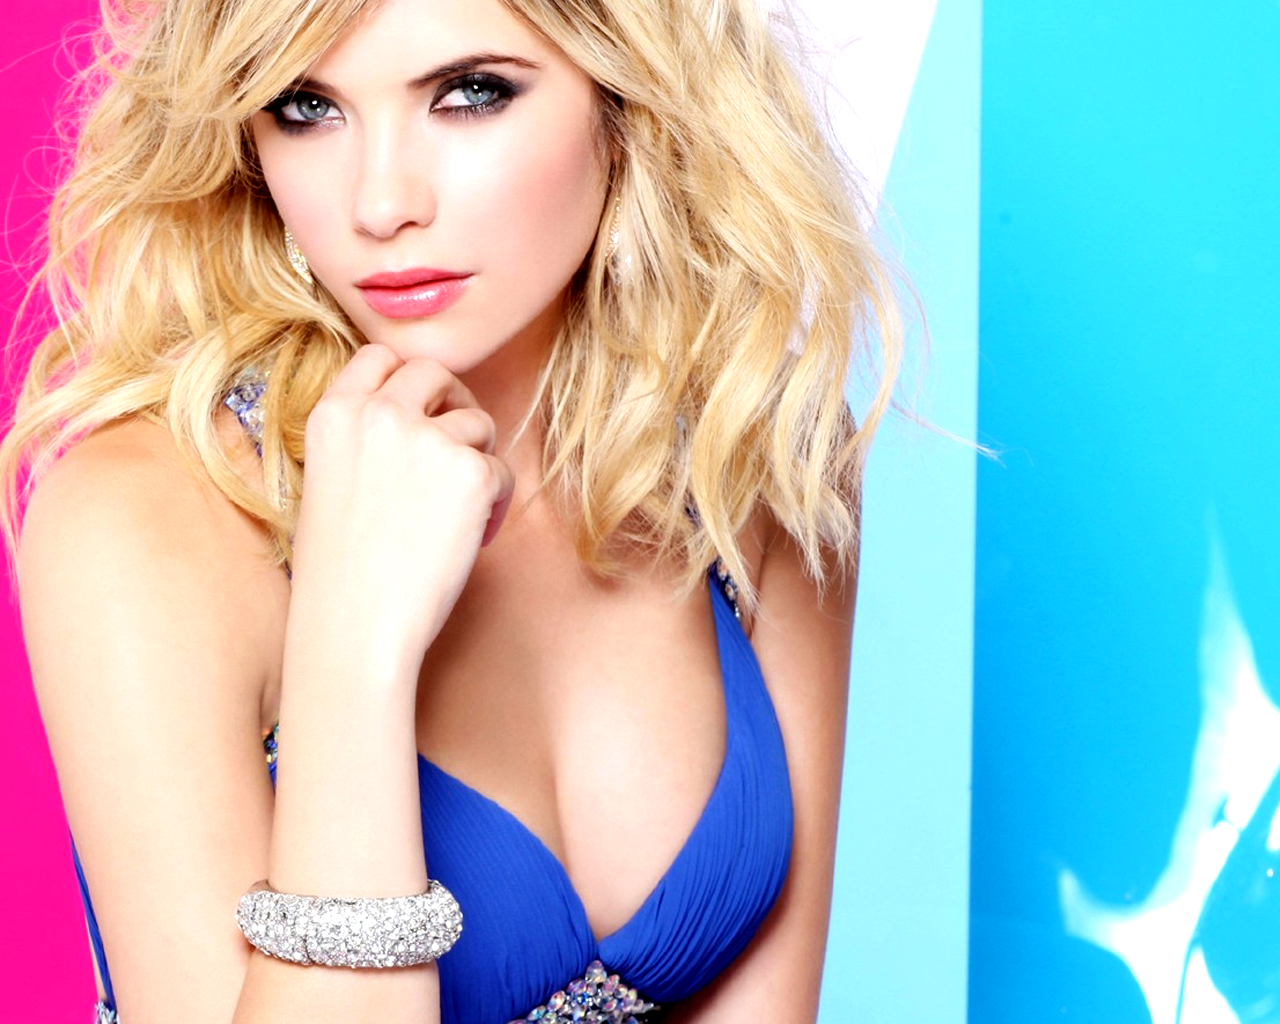 Ashley Benson Ashley BensonAshley Benson